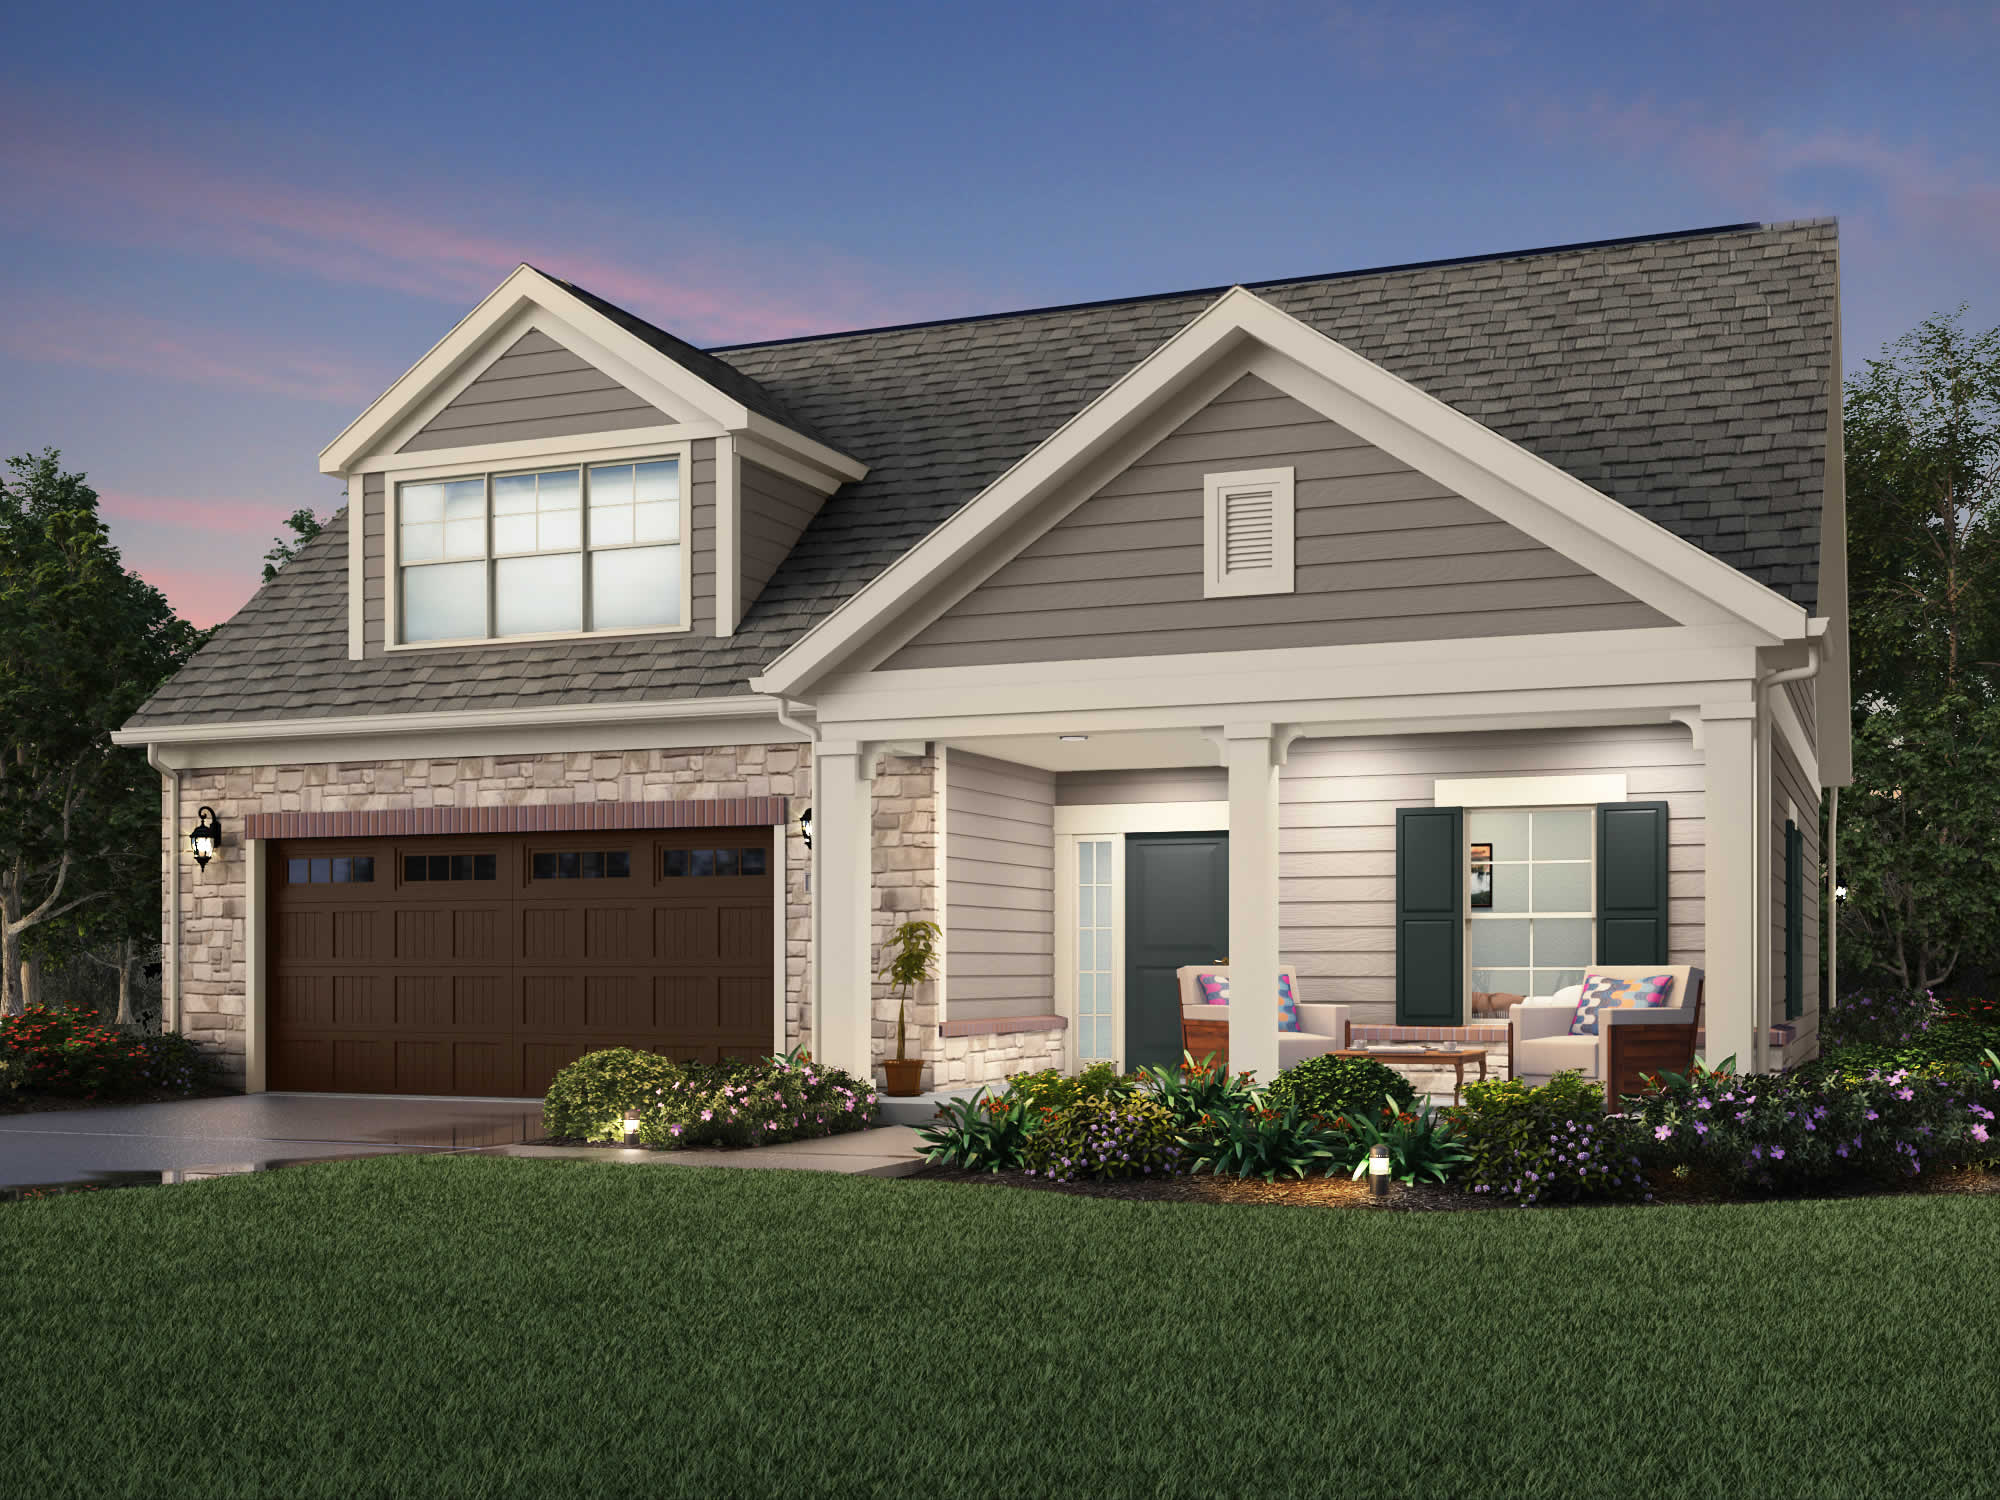 This Can Be A Innovative Image Of Patio Homes for Sale In Auburn Hills Wichita Ks